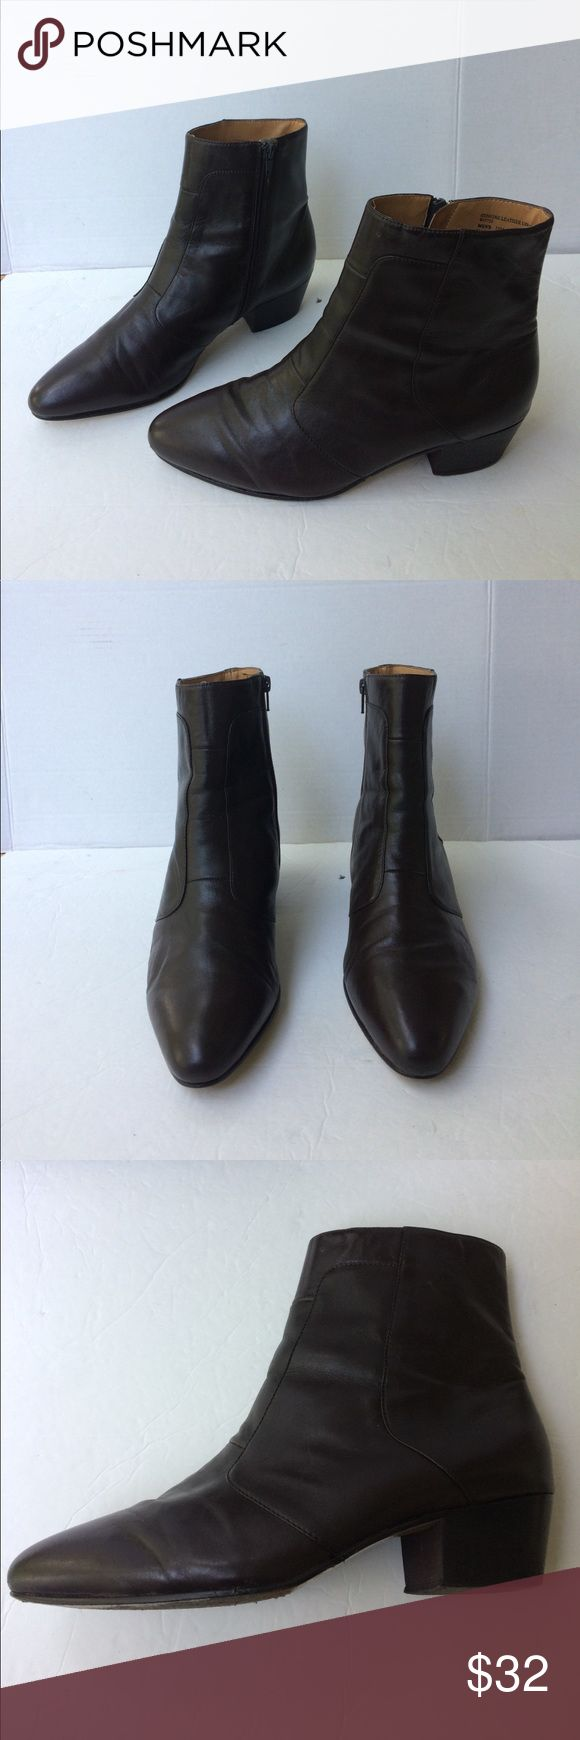 "Giorgio Brutini Men's Calloway Brown Ankle Boots This is a nice preowned pair of Giorgio Brutini dark brown leather ankle boots. They are side zipped with a 2"" Cuban heel and leather lining and leather soles. They have a few very minor scuffs and scuffs of the leather finish on the soles. Otherwise extremely good condition and great looking. 10M Giorgio Brutini Shoes Boots"